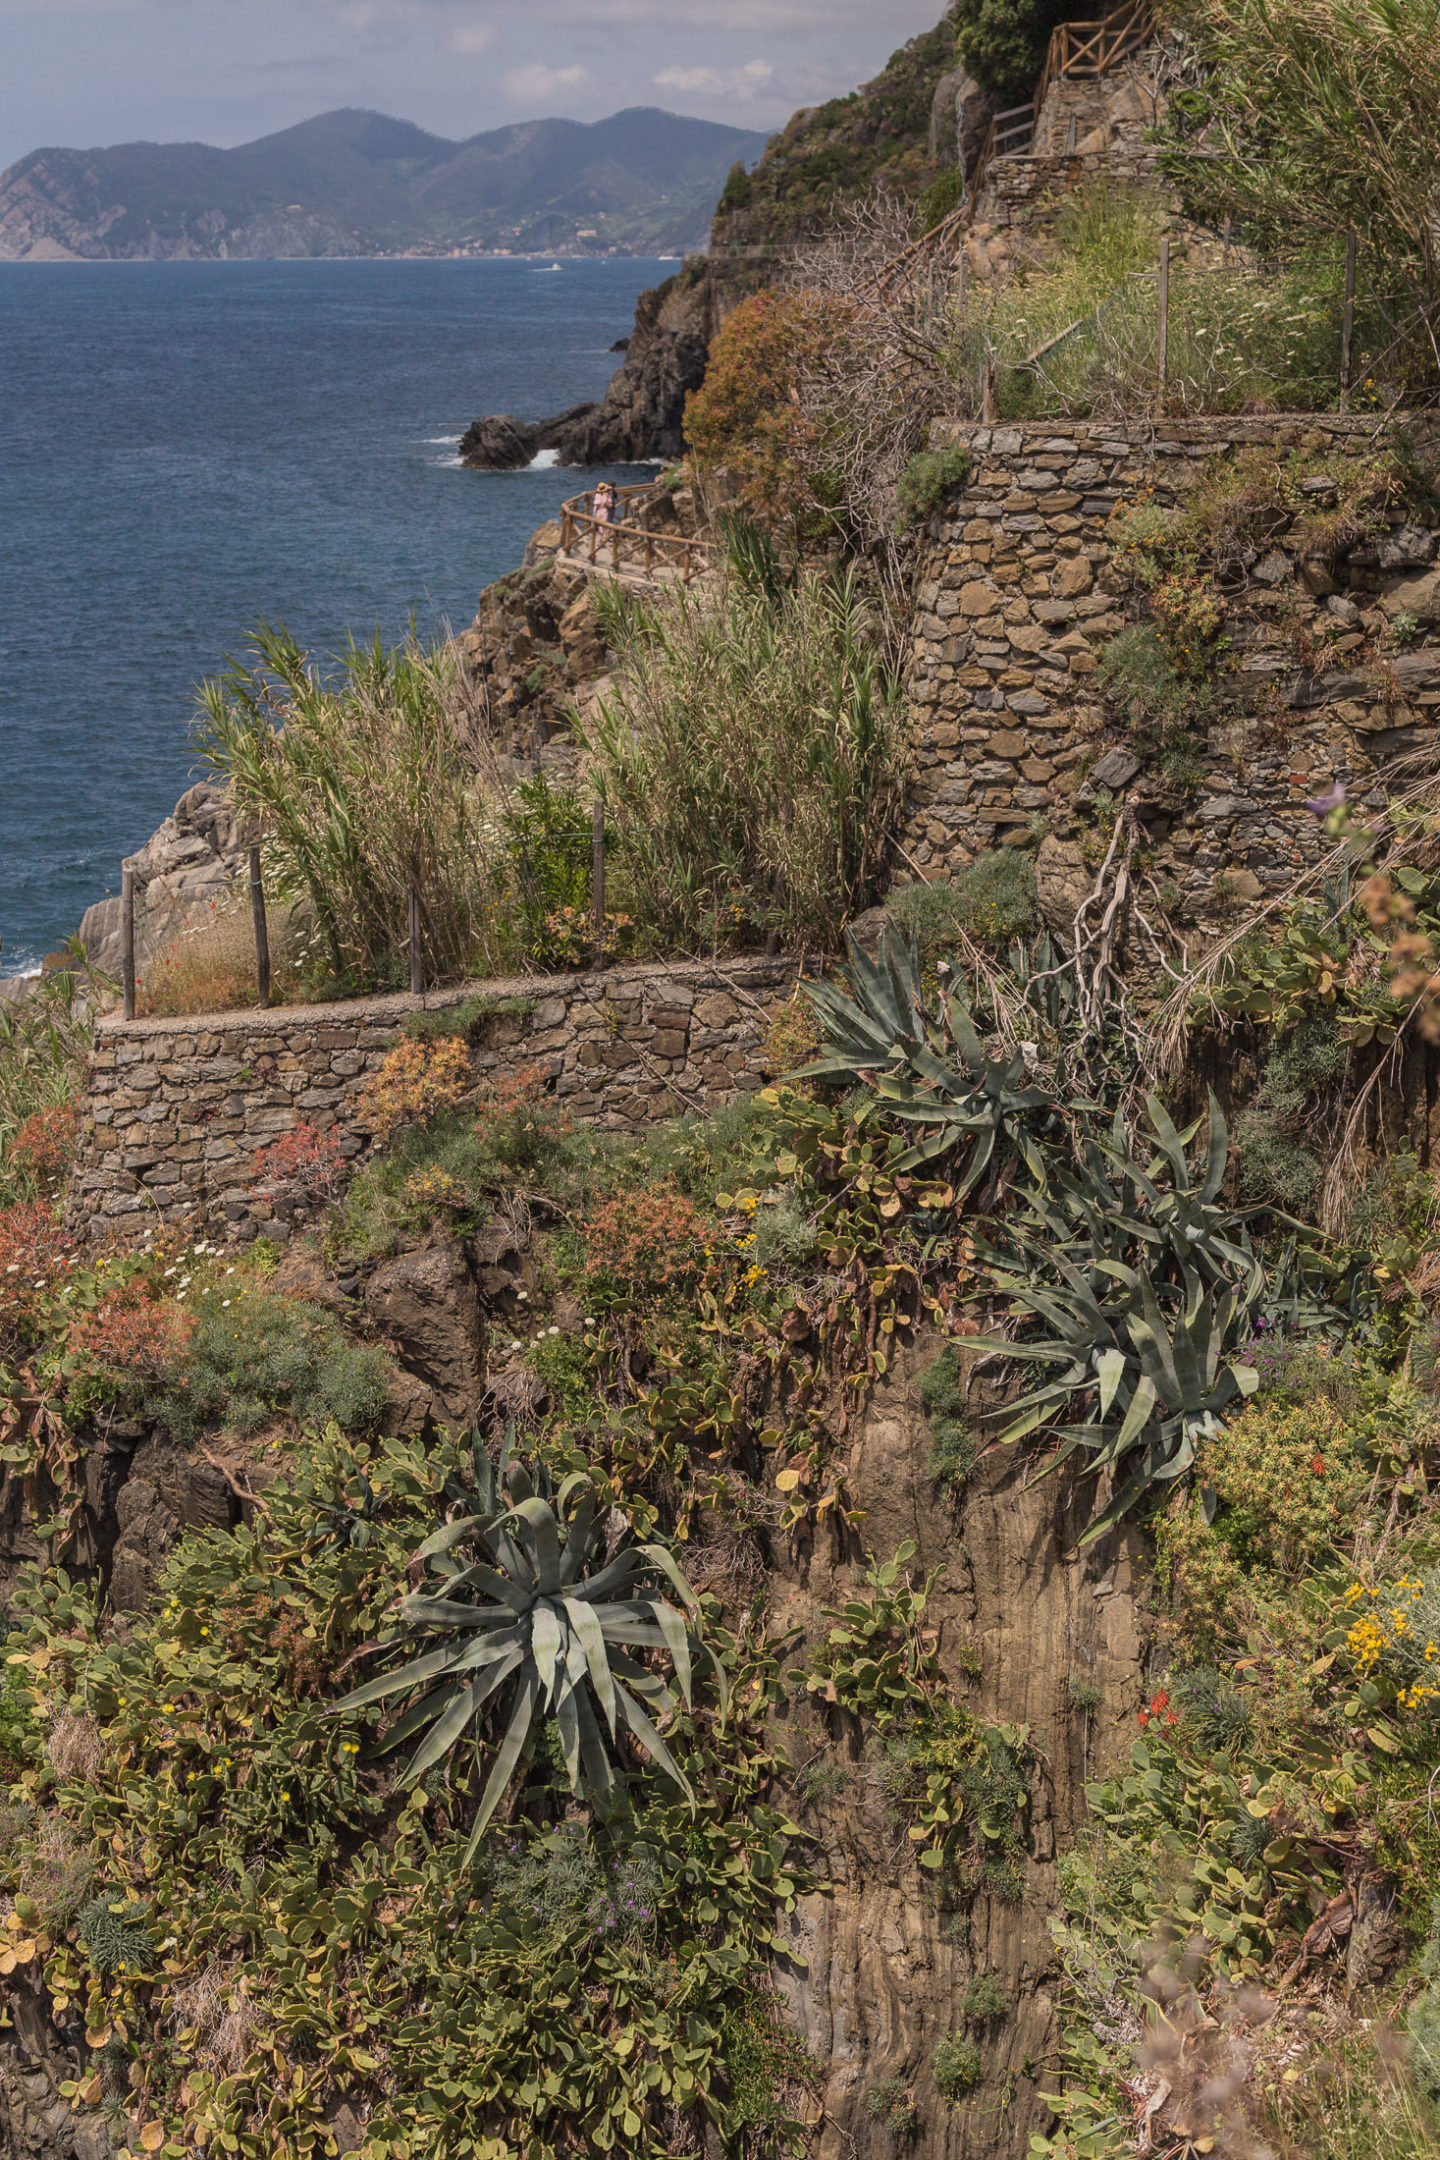 succulent plants across a cliffside, can see some blue sea in the corner